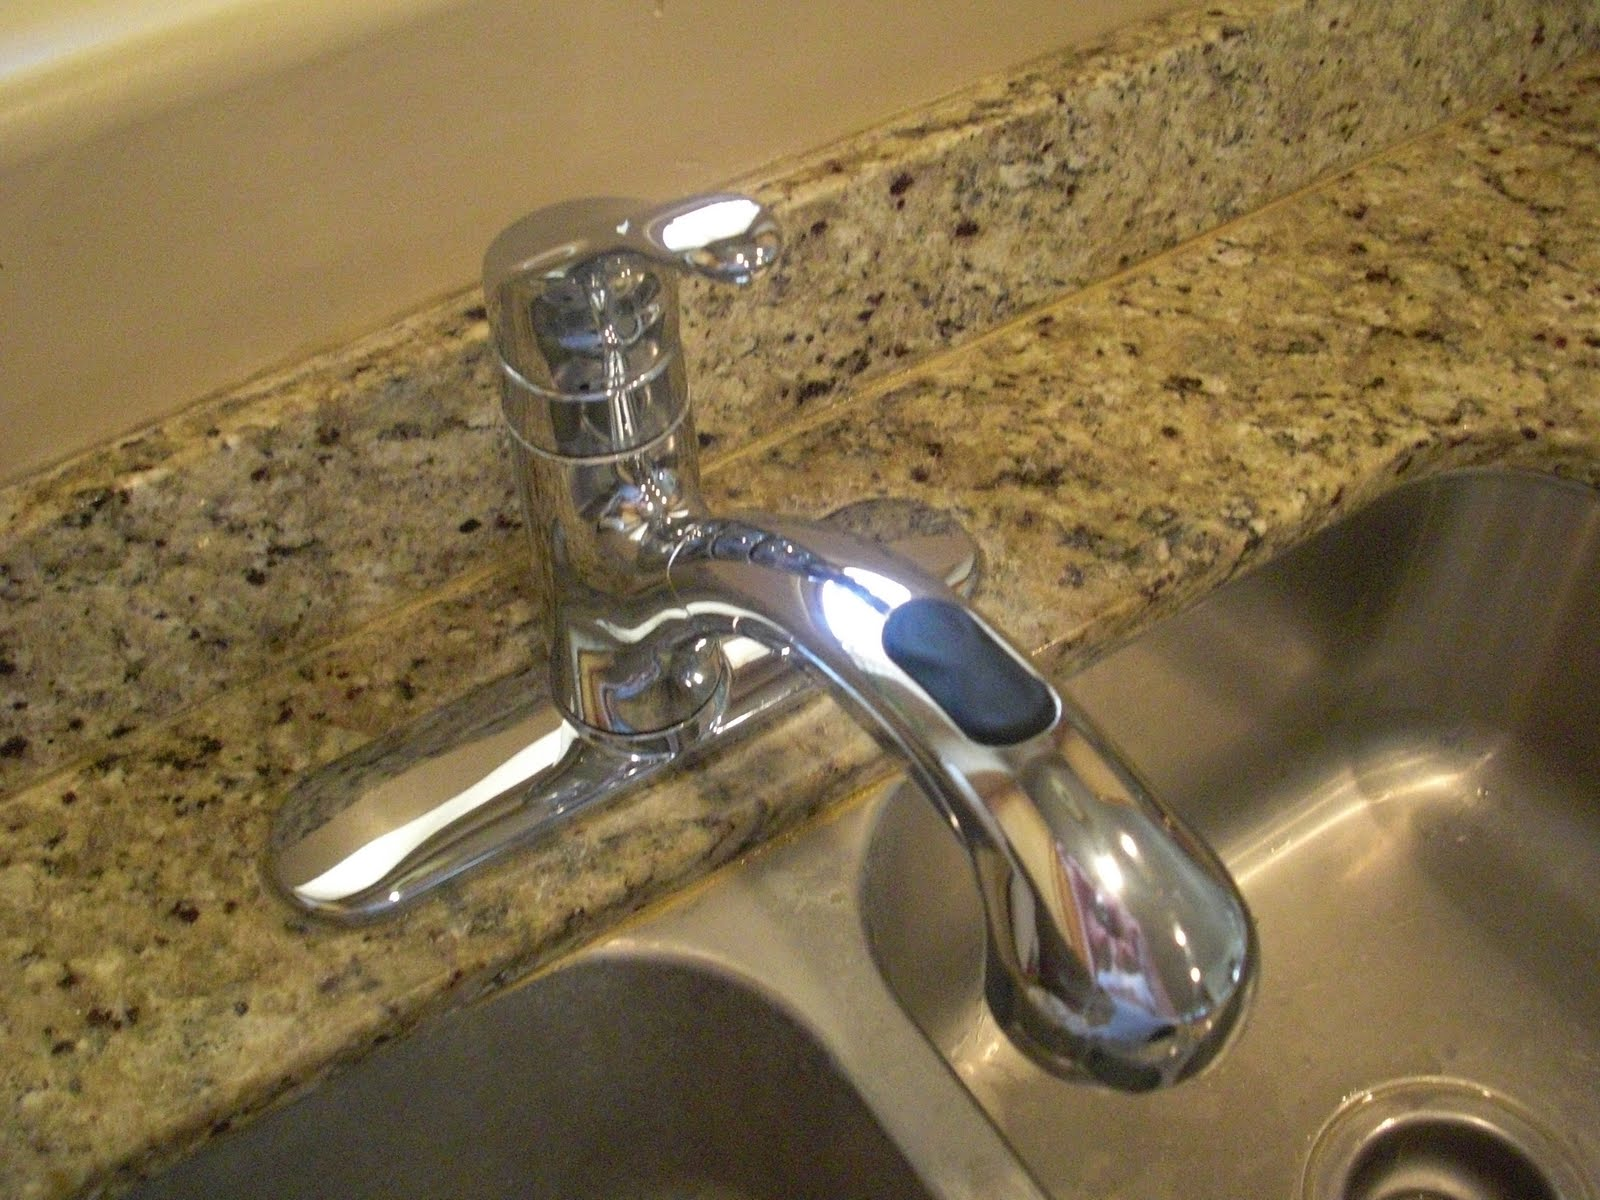 Clean Up Your Messy House: Hard Water?